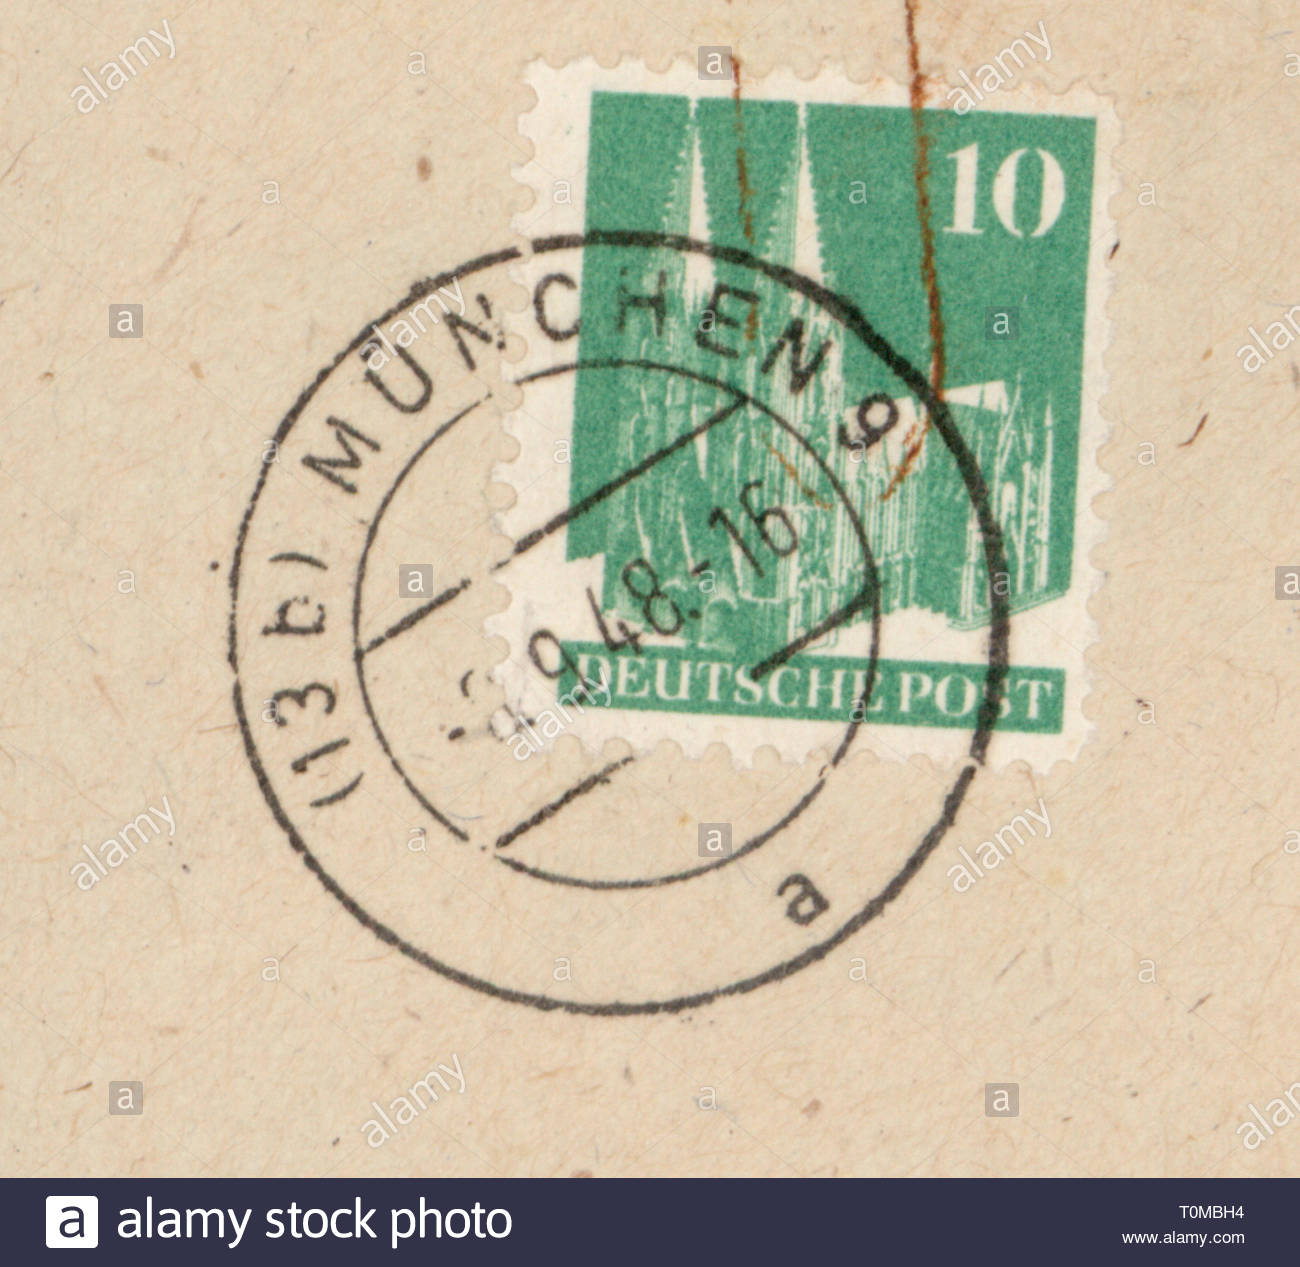 mail, postage stamps, Germany, 10 pfennig postage stamp, German mail, first issue: 1.9.1948, motif Cologne Cathedral, design by Max Bittrof, postmarked, Munich, September 1948, postal stamp, postal stamps, Cologne, architecture, post war period, post-war period, post-war years, post-war era, bizone, West Germany, Western Germany, Germany, 1940s, 40s, 20th century, no-people, pfennig, penny, postage stamp, postage stamps, mail, post, cathedral, cathedrals, design, designs, historic, historical, Artist's Copyright must also be cleared - Stock Image